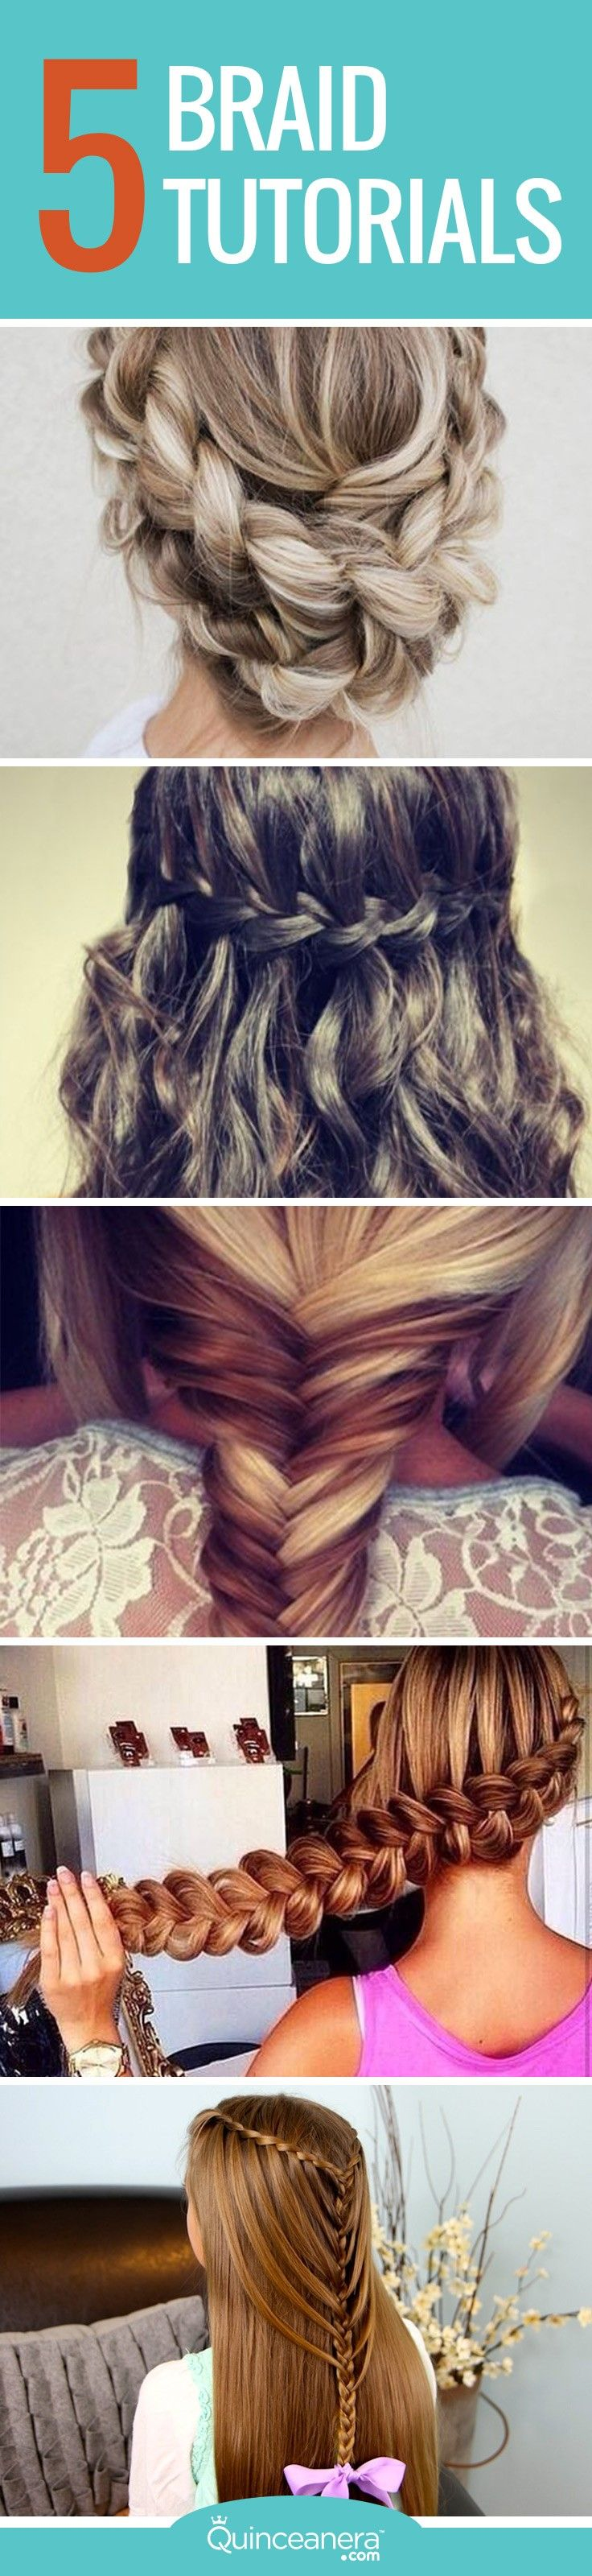 Watch the following step-by-step braid tutorials and give yourself a mini hair makeover to complement your next head turning outfit! - See more at: http://www.quinceanera.com/hair-styles/braid-tutorials-spice-up-next-hairstyle/?utm_source=pinterest&utm_medium=social&utm_campaign=article-022716-hair-styles-braid-tutorials-spice-up-next-hairstyle#sthash.neKKFsu6.dpuf